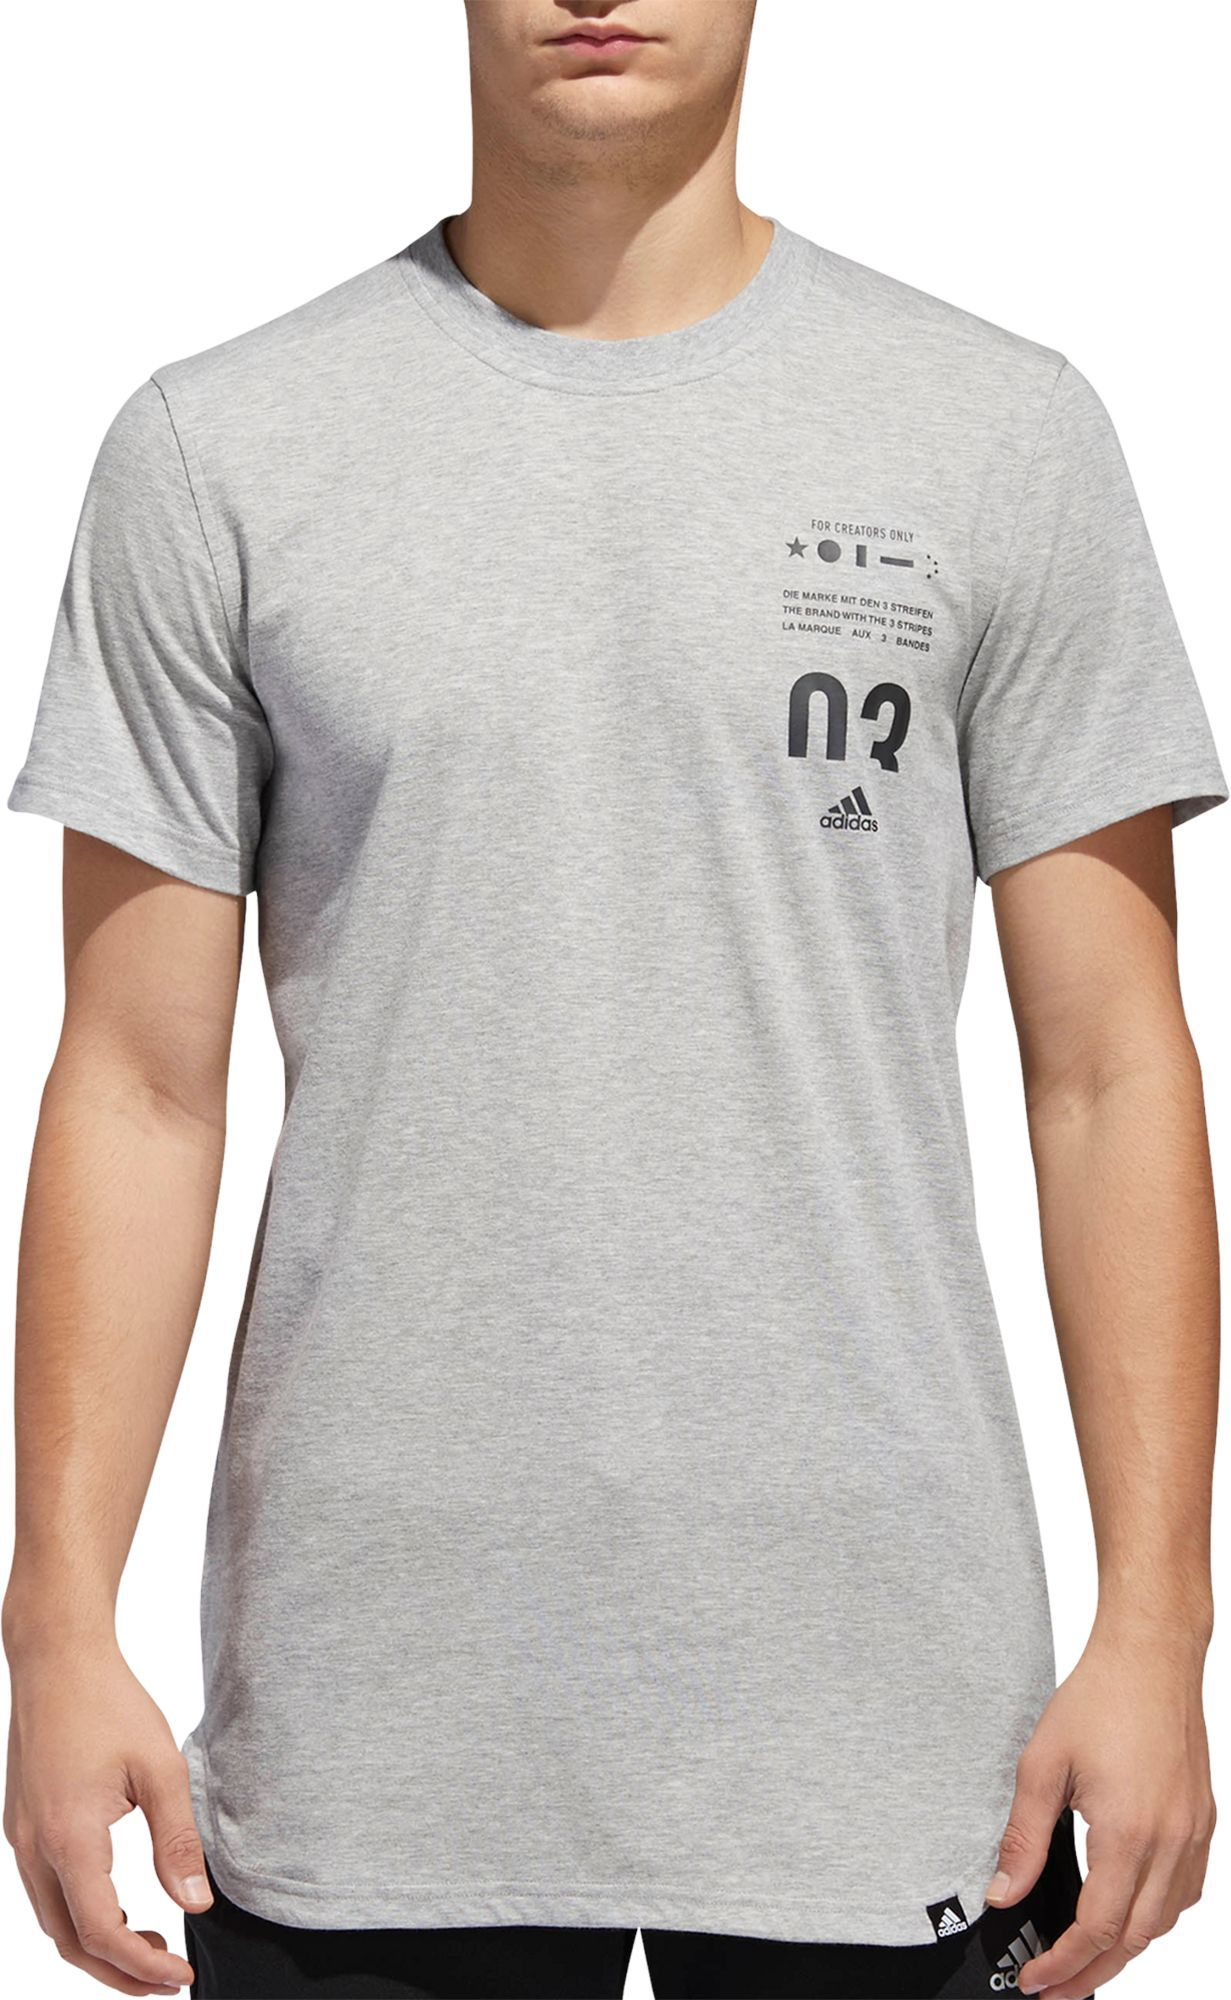 98fd5dfc2d23 adidas Men s Essentials Printed Scoop Graphic T-Shirt   Products ...